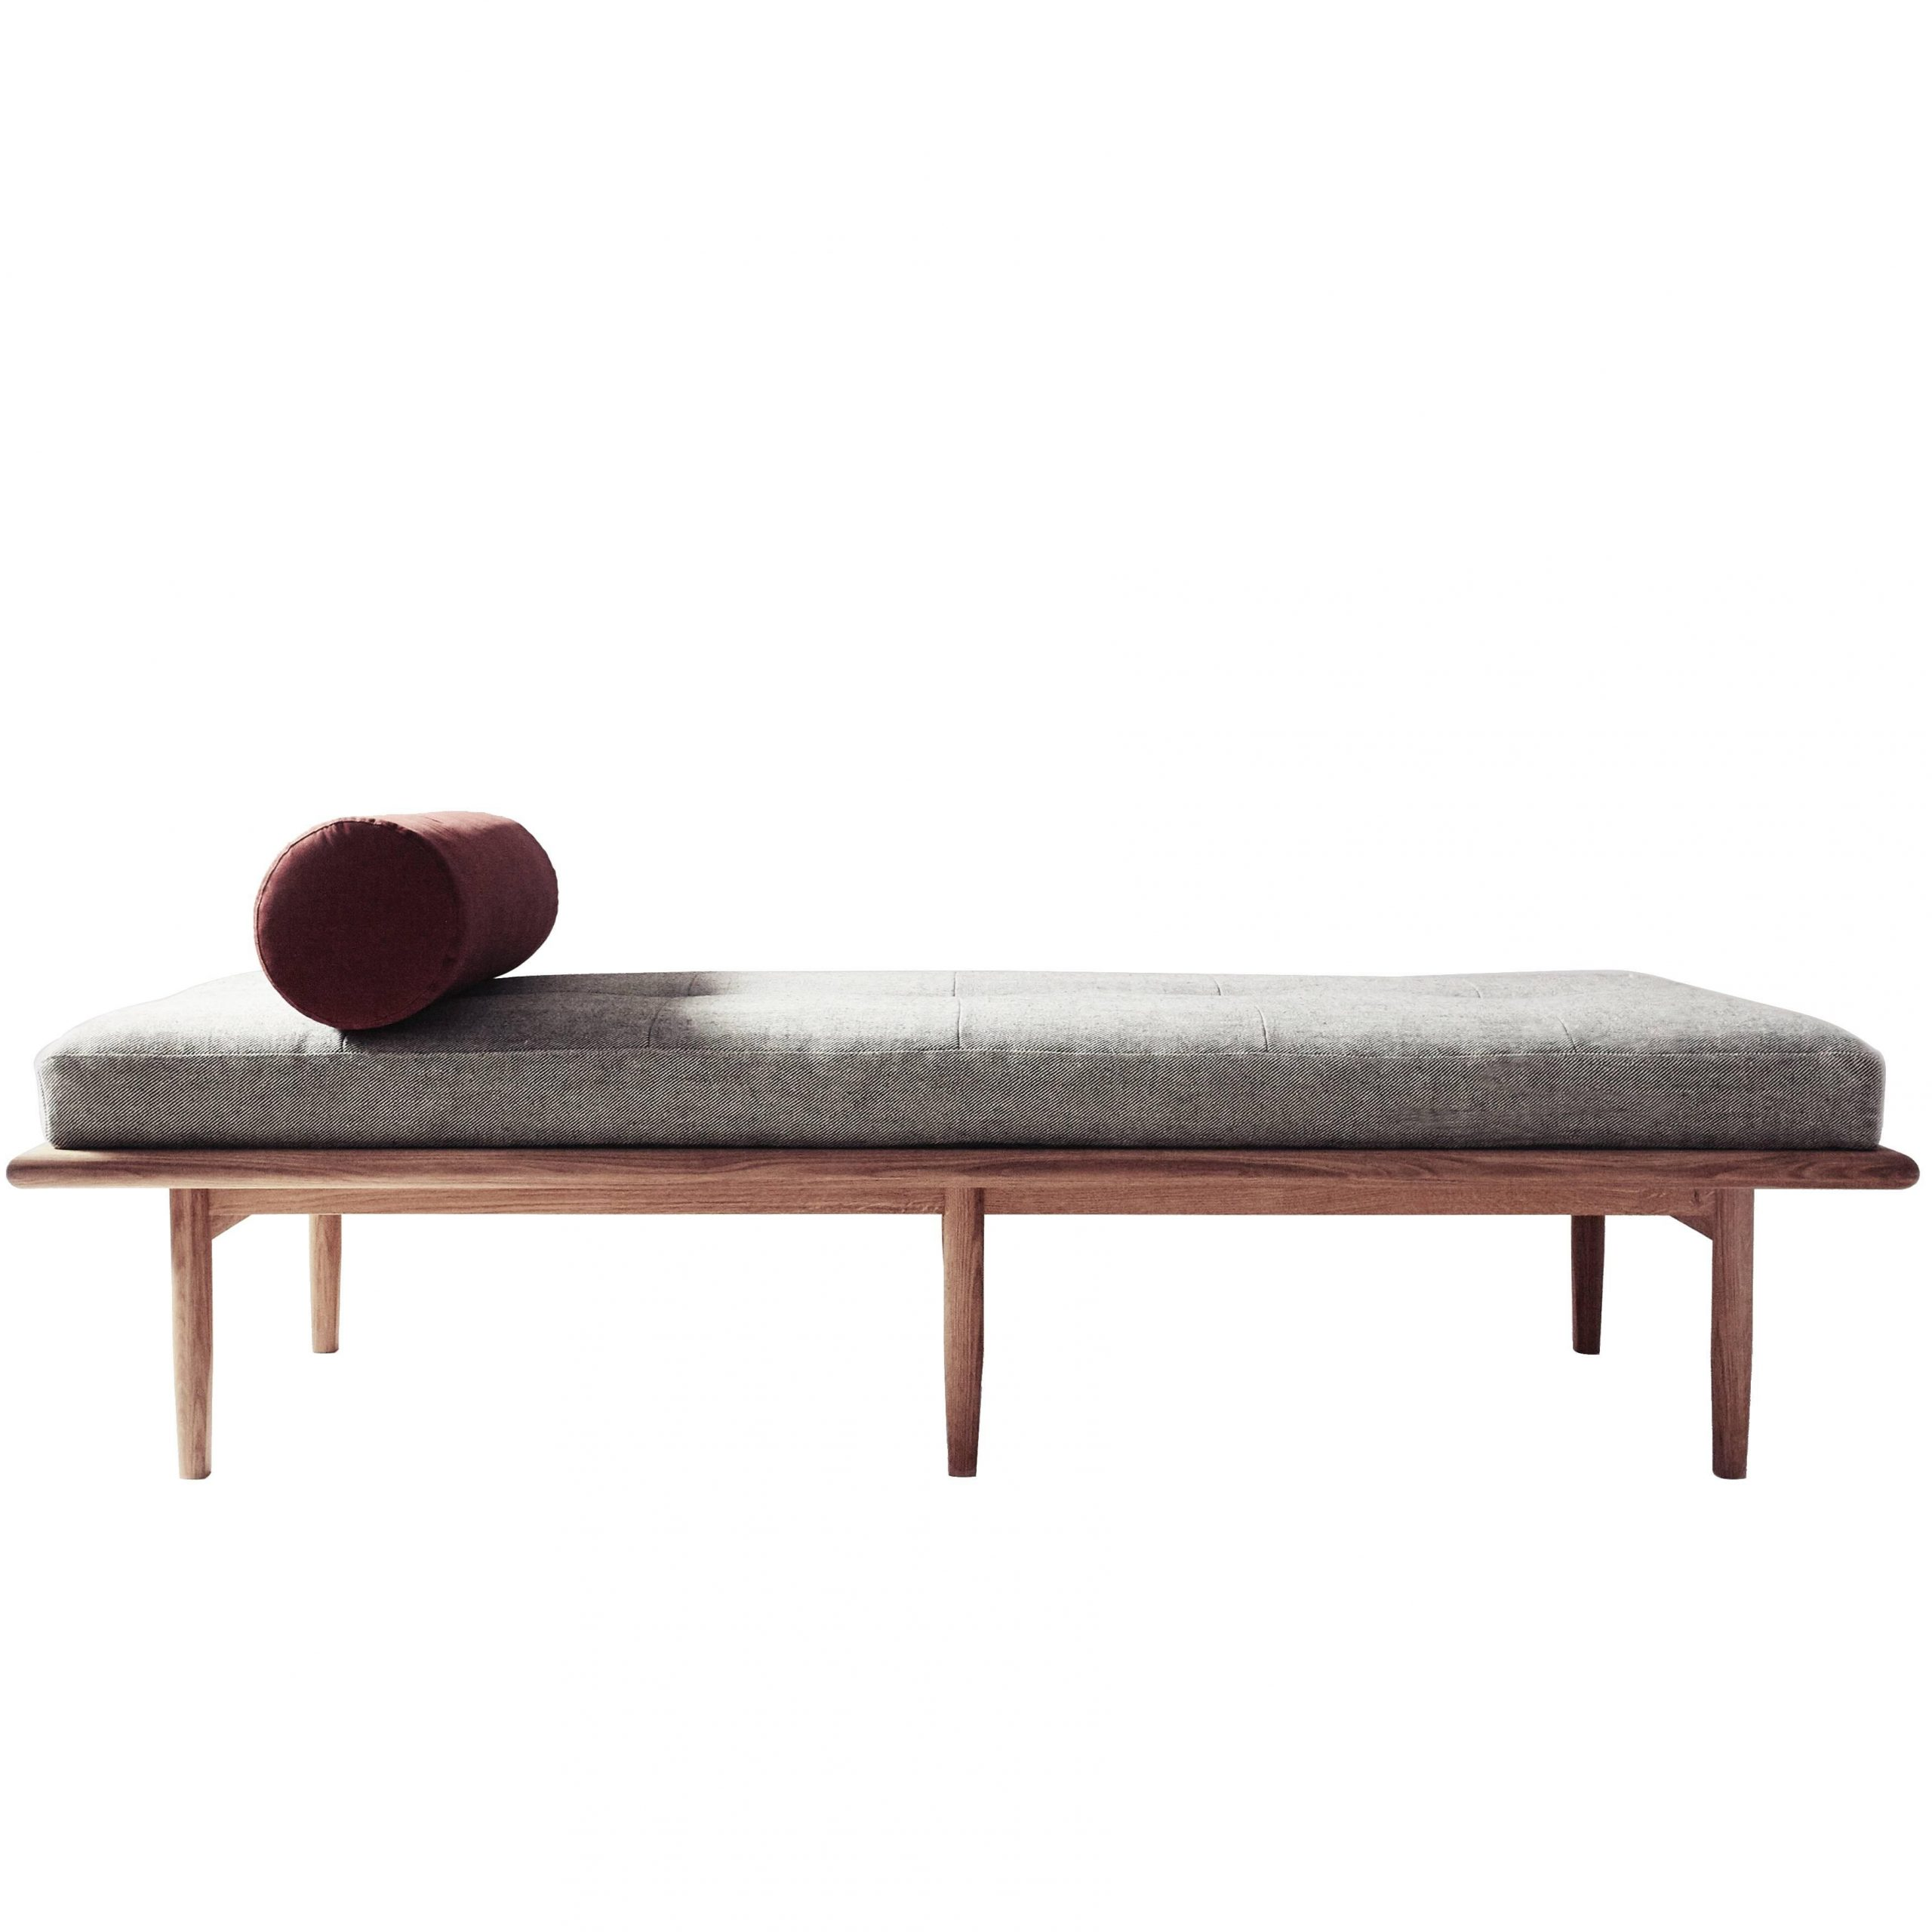 Preferred Bishop Daybeds In Sylva Daybed With Hand Pleated Upholstery And Scandinavian White Oak (View 18 of 25)